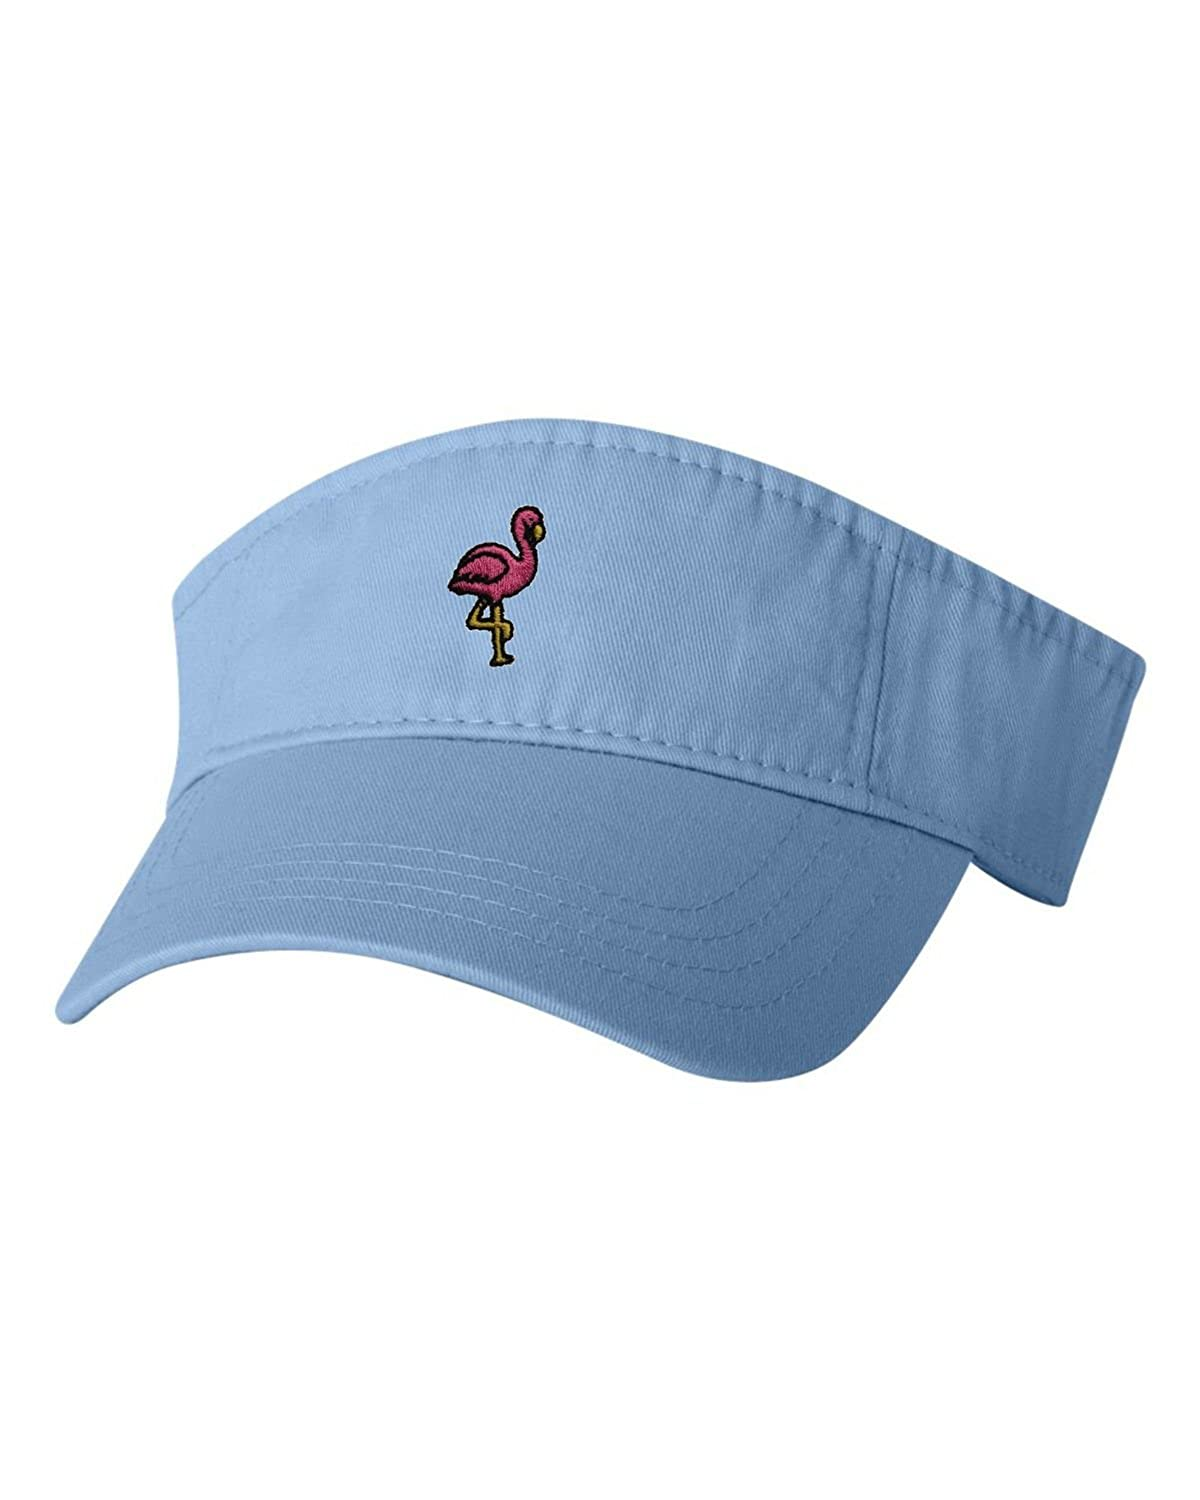 f8725208f1f Amazon.com  Adjustable Baby Blue Adult Flamingo Embroidered Visor Dad Hat   Clothing